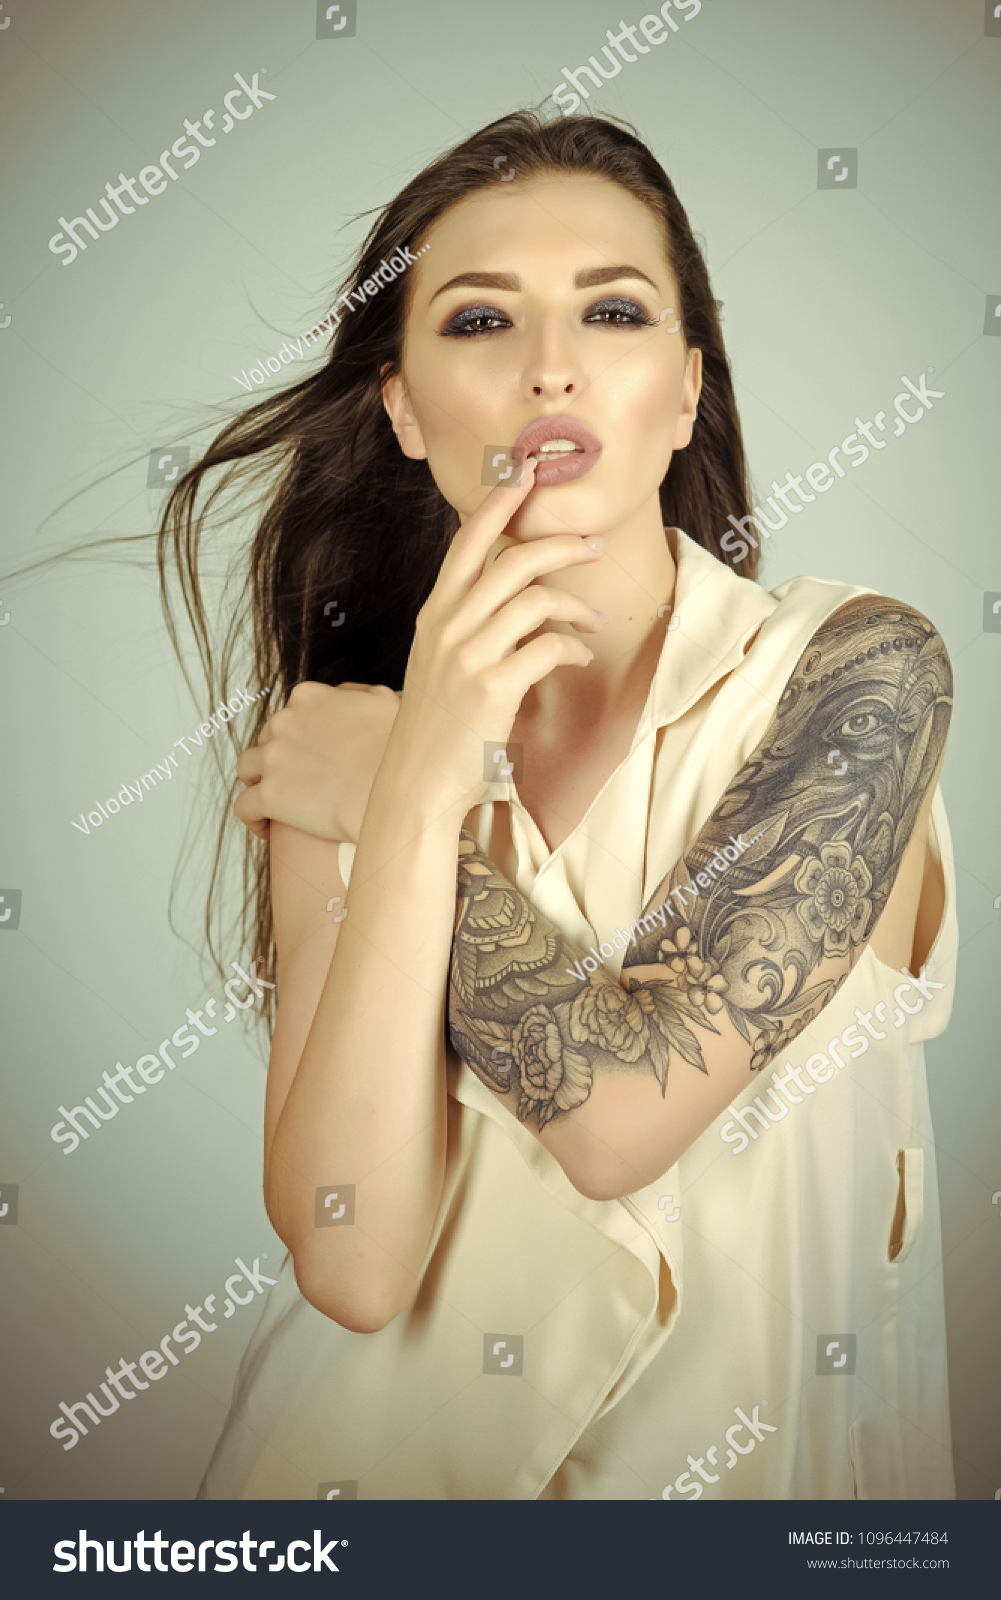 Skincare Body Art Sensual Woman Tattoo Stock Photo Edit Now 1096447484